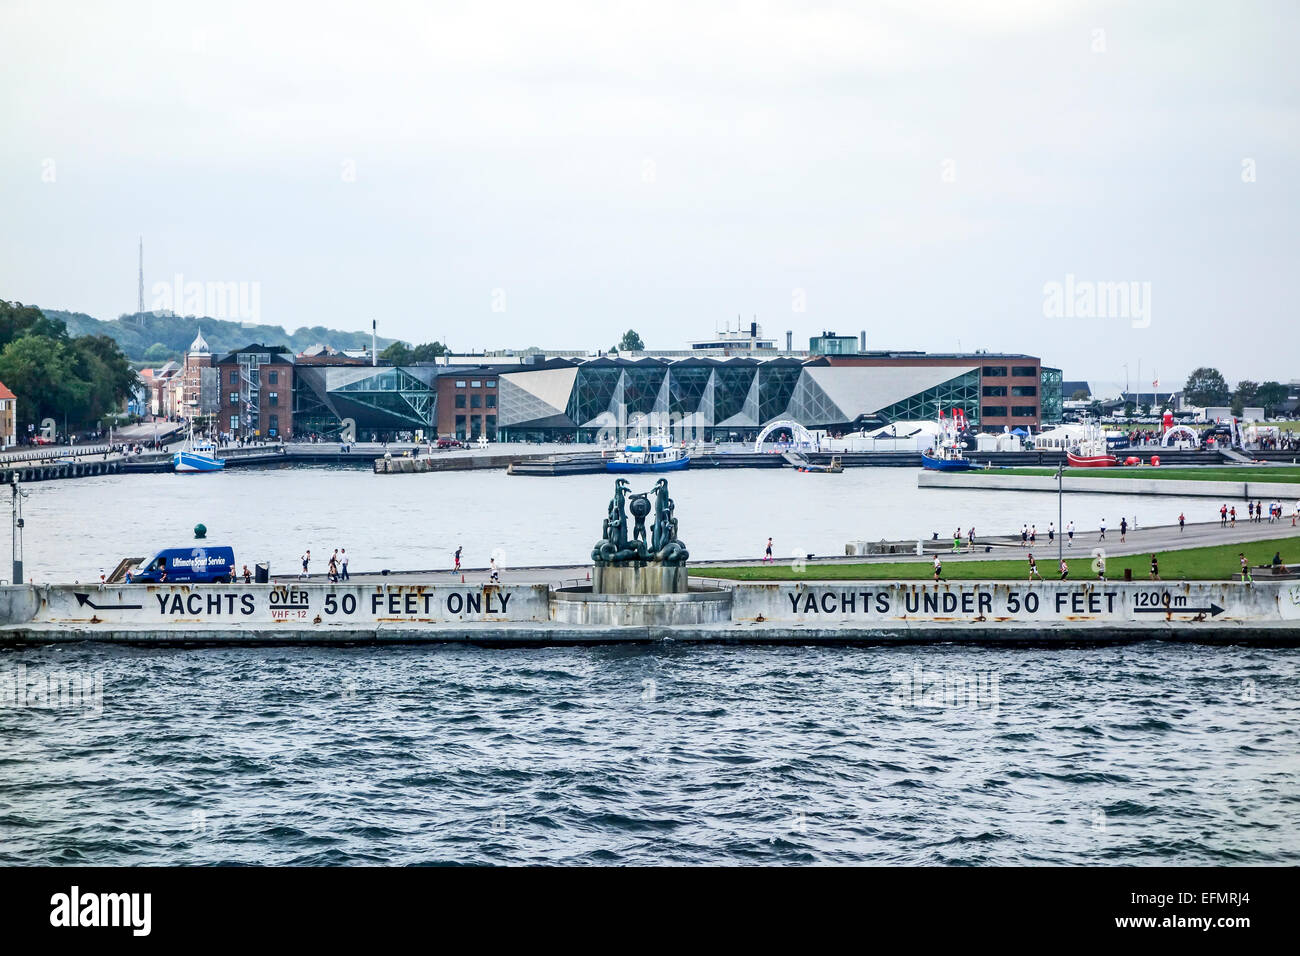 Entrance to Elsinore Harbour in Denmark with the Culture Yard with library in the background - Stock Image